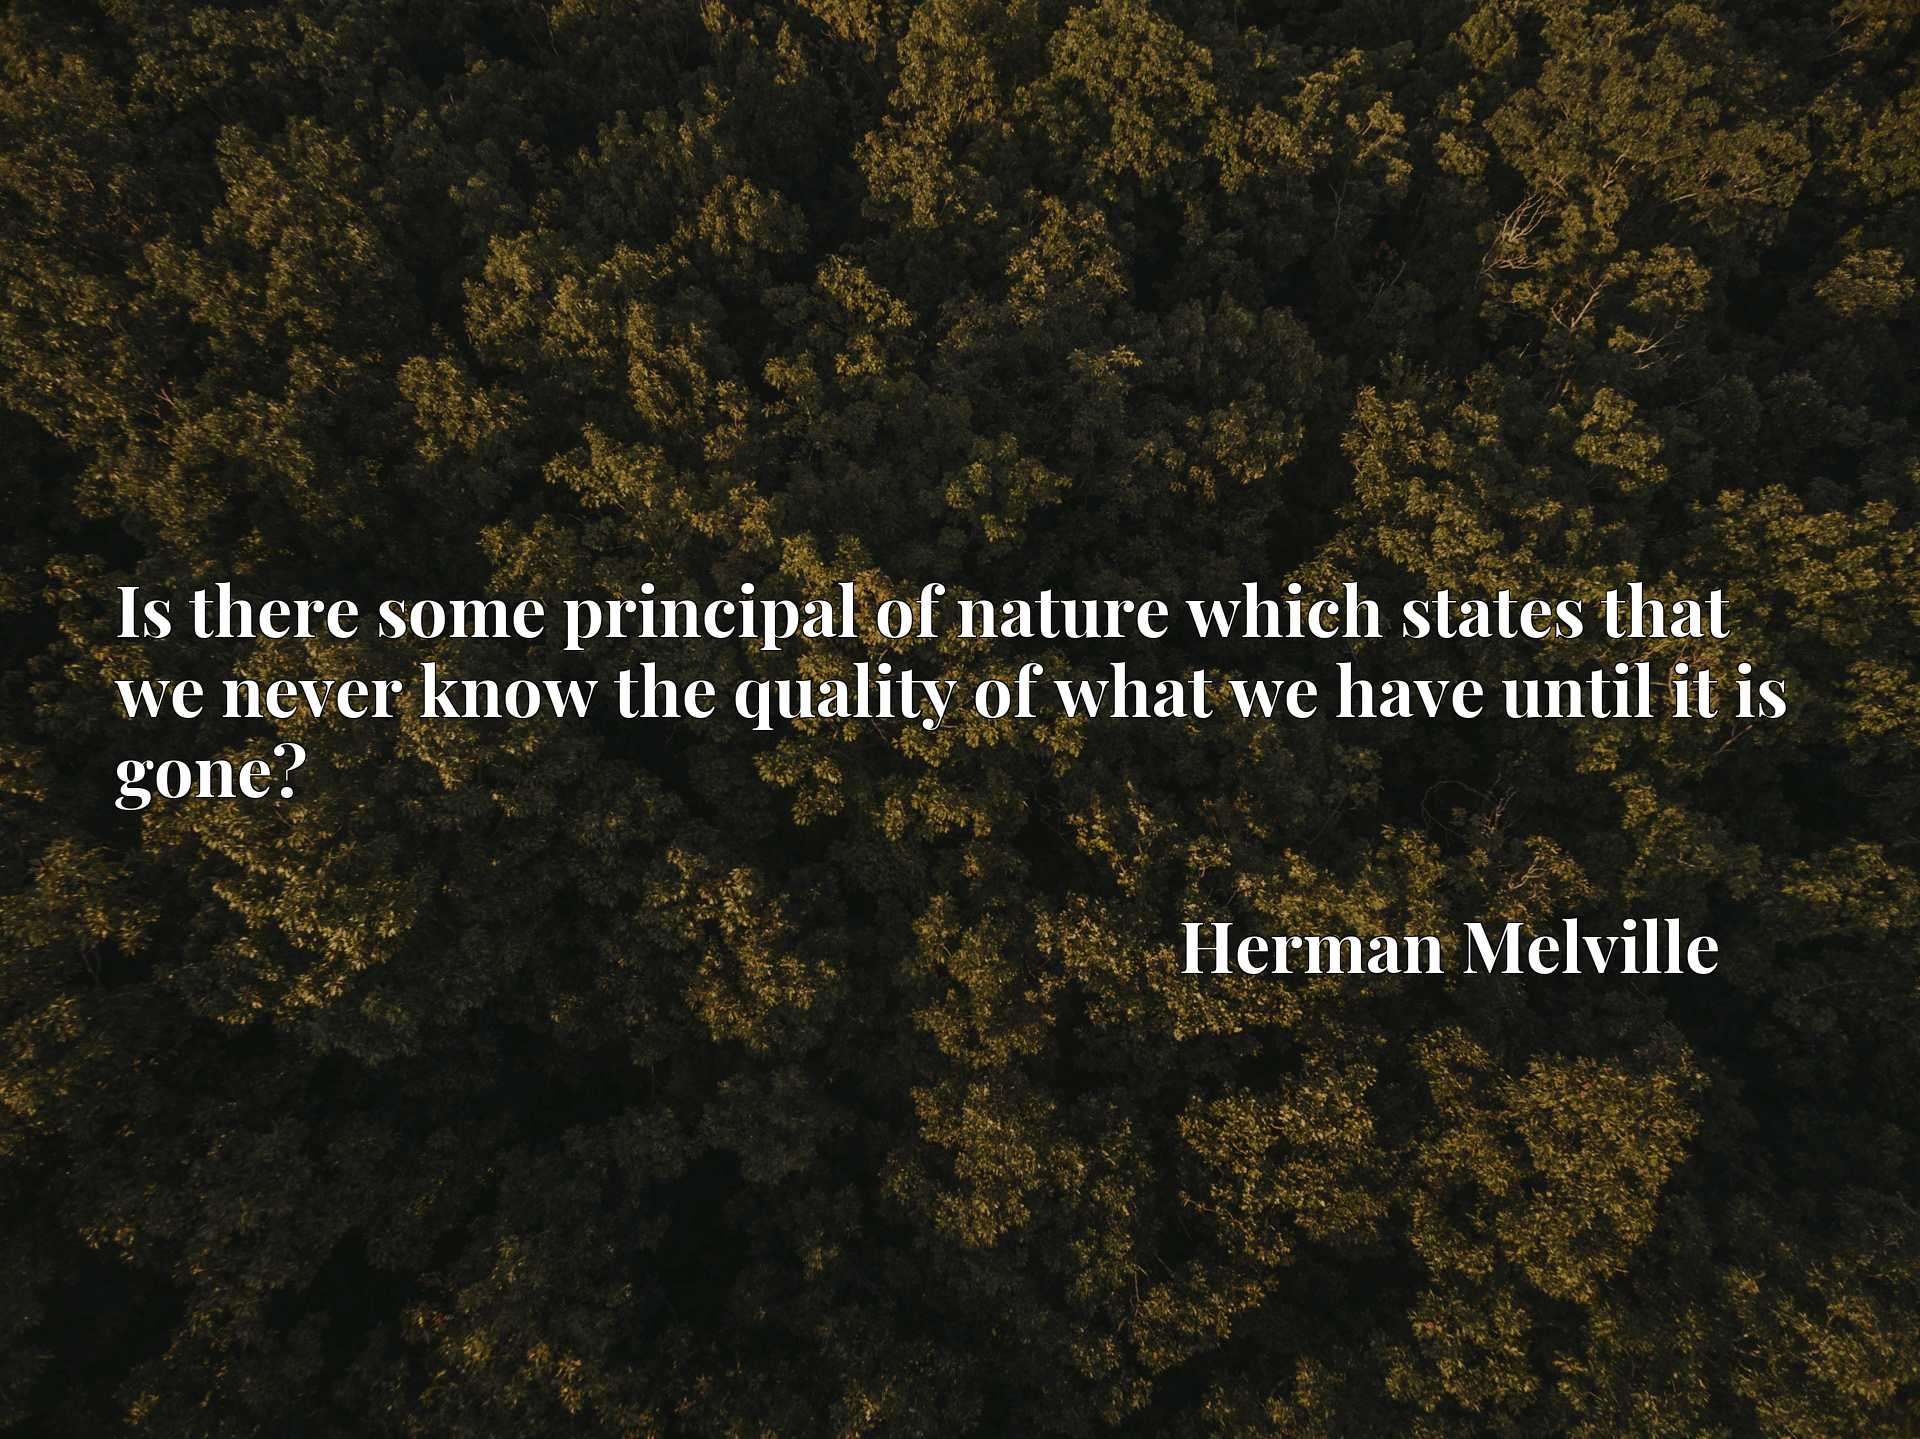 Quote Picture :Is there some principal of nature which states that we never know the quality of what we have until it is gone?